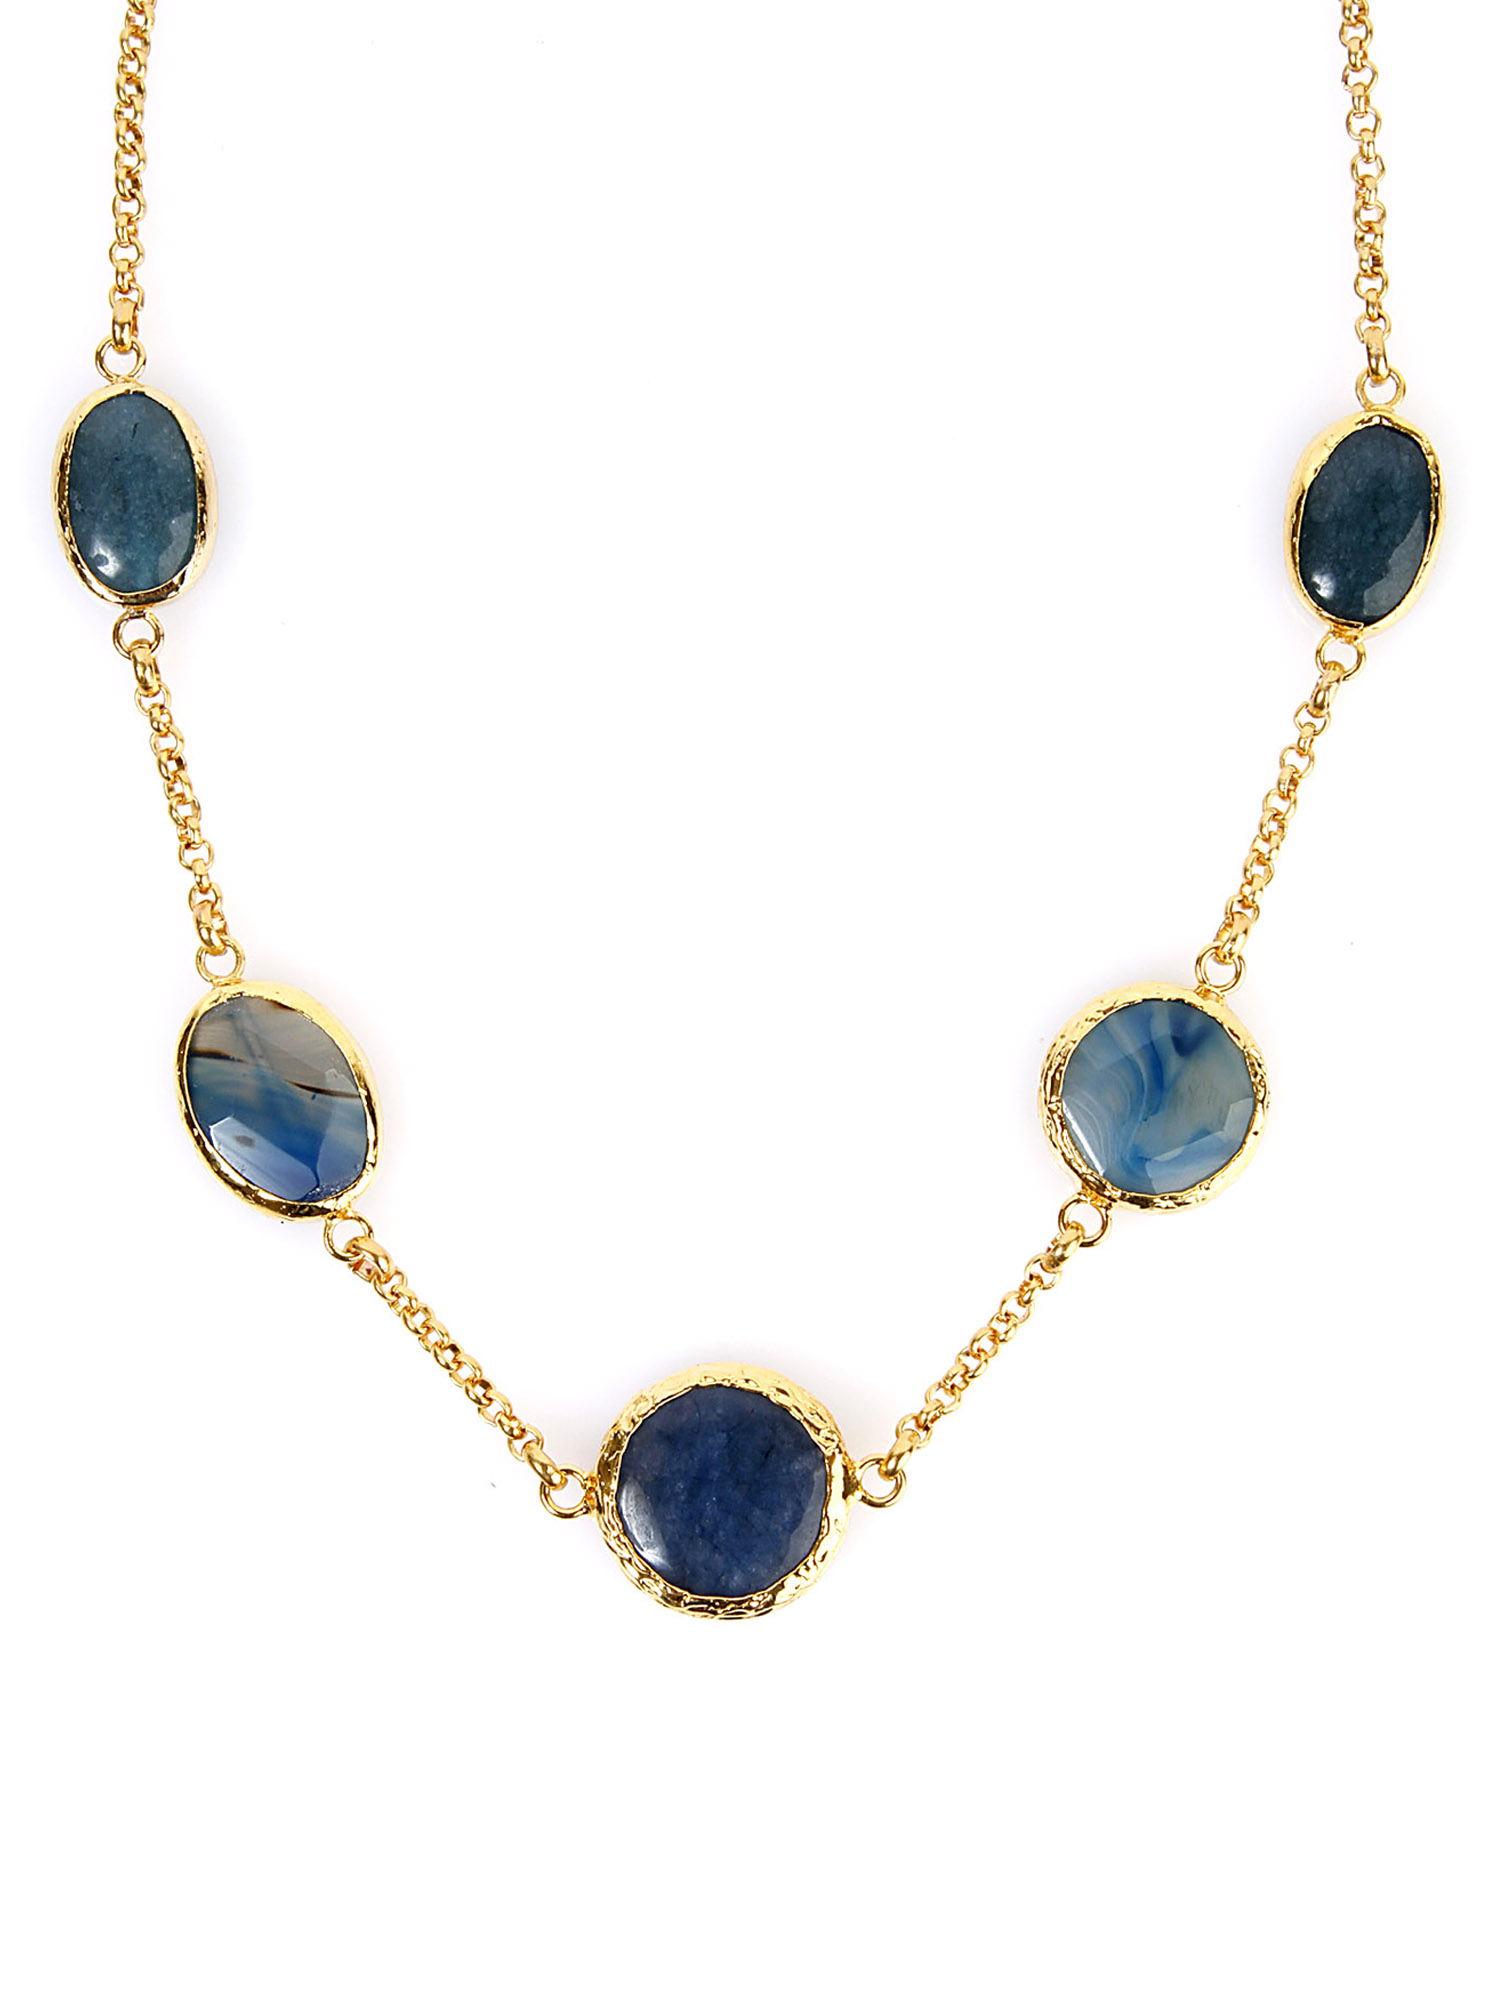 ELYA Gold Plated Green and Blue Dyed Chalcedony Necklace by West Coast Jewelry